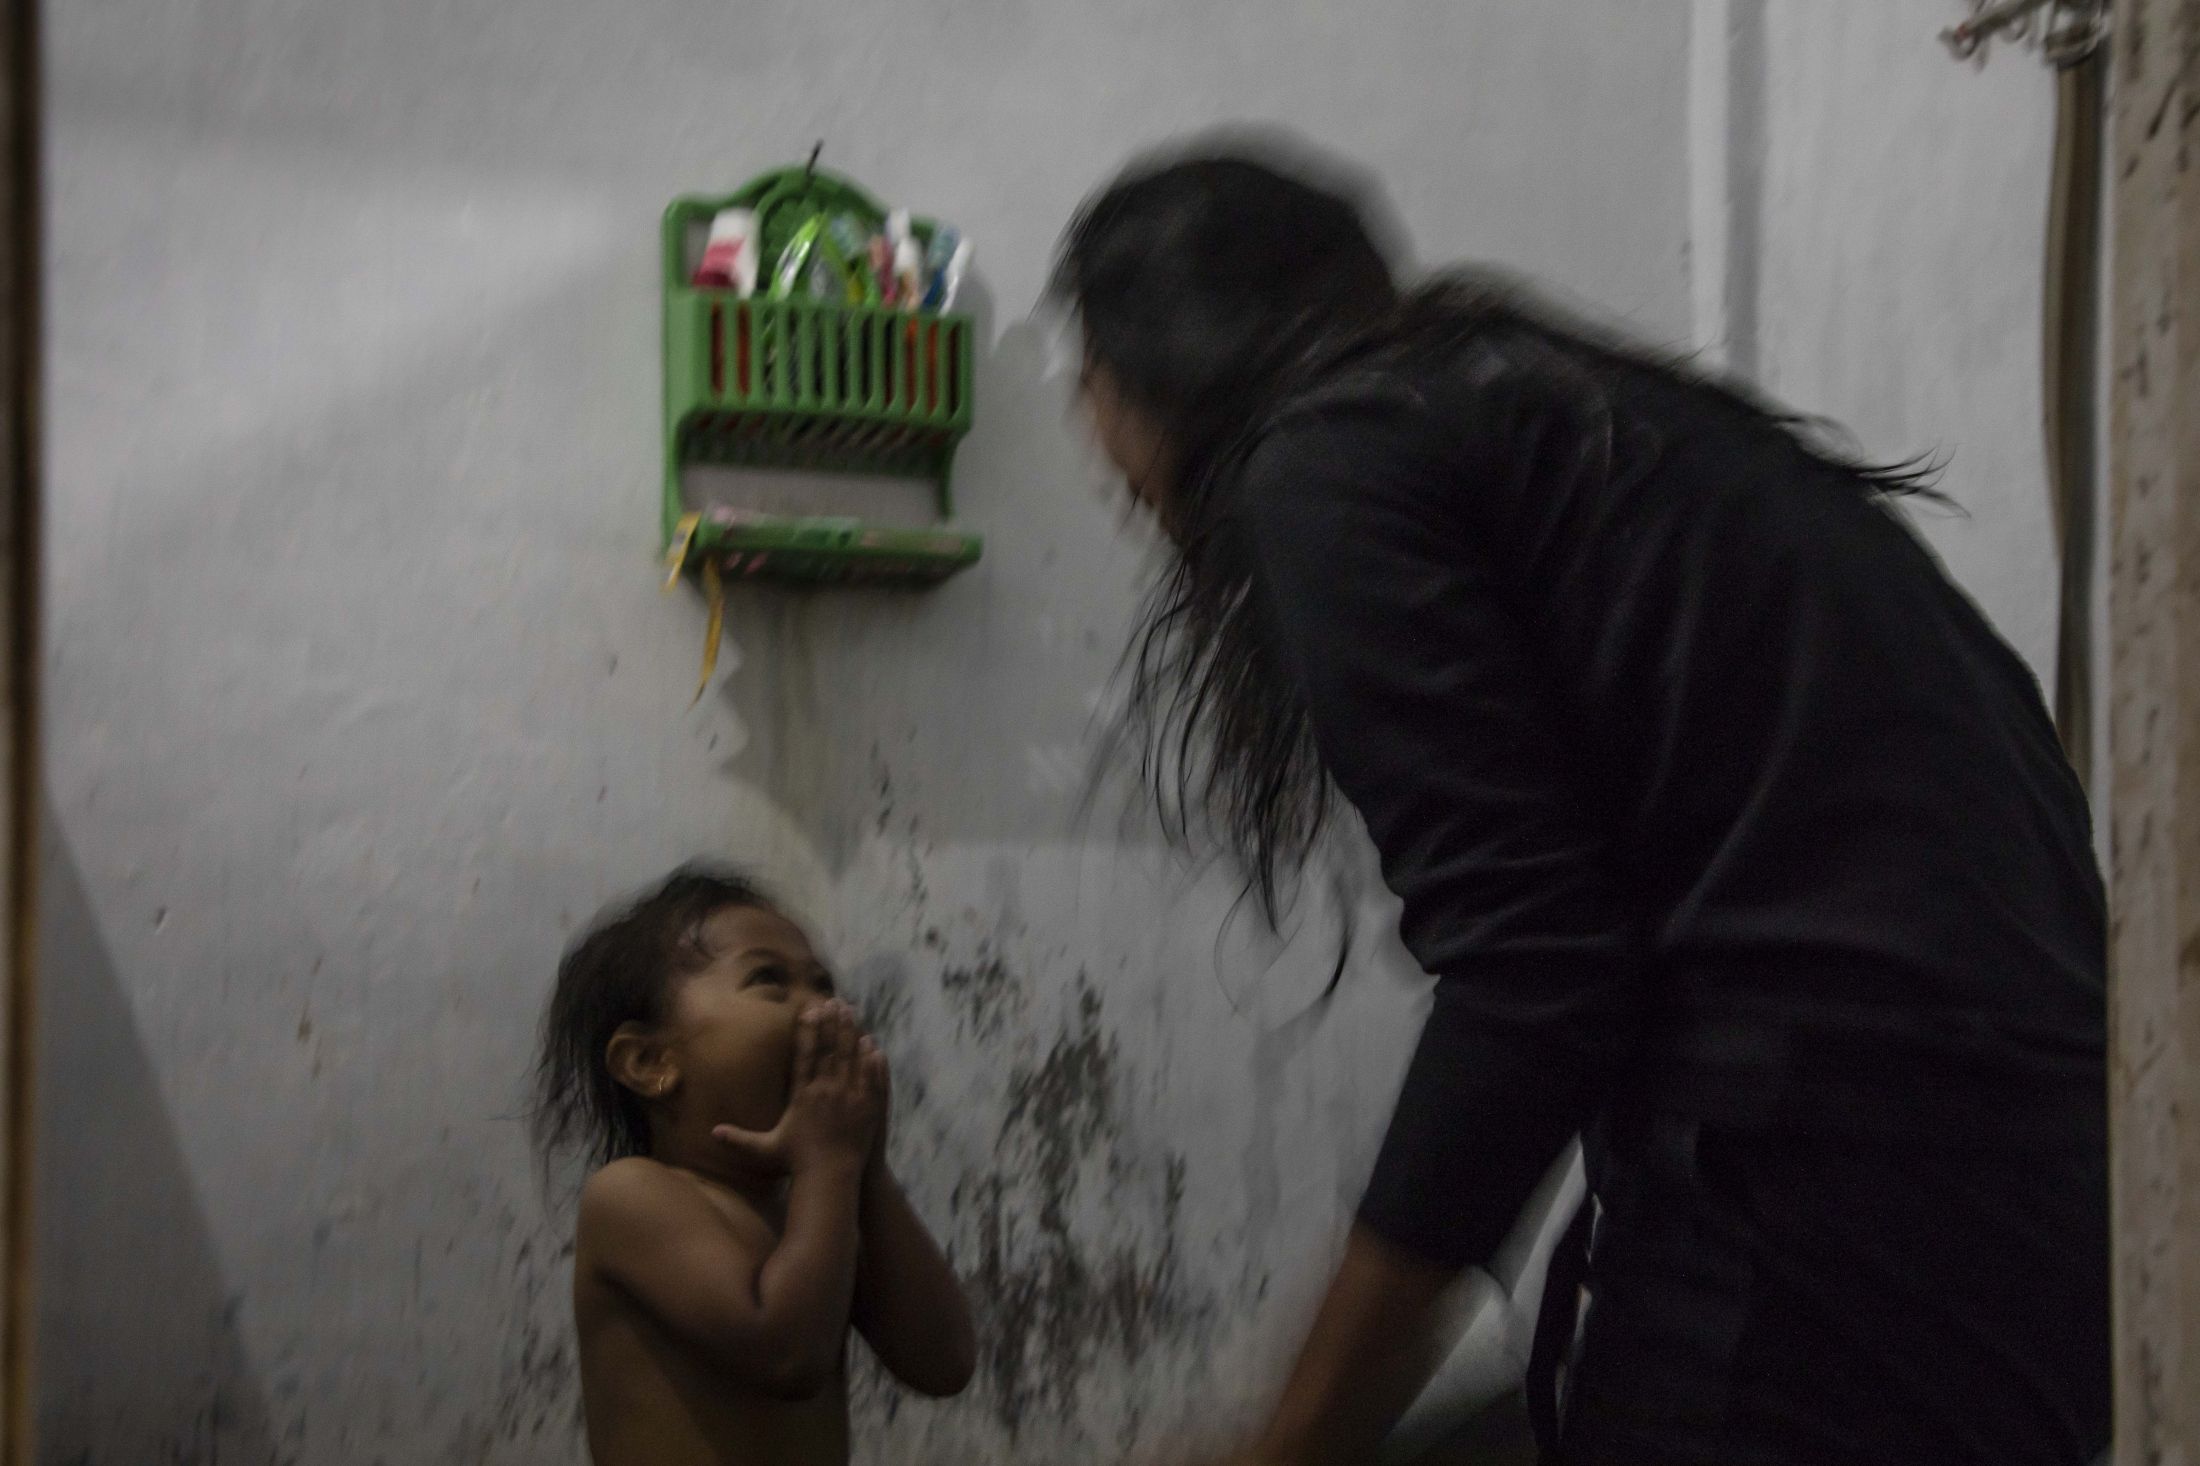 Mbak ('sister'/young woman) Barni, 24 years, showering her daughter in their house in th viillage of xy. She lives here with her husband but frequently visits her mother who now lives in Karang Kendal. Barni grew up in Palemsari but went to school in a city far away from the mountain for 6 years. Yet, she decided to return to the mountain after high school because of the dedication of people to nature here, their respectful caring of others, and their unique and deep cultural roots. Although she will also ensure her daughter receives a very good education, she hopes that she will live close to the mountain later in her life.